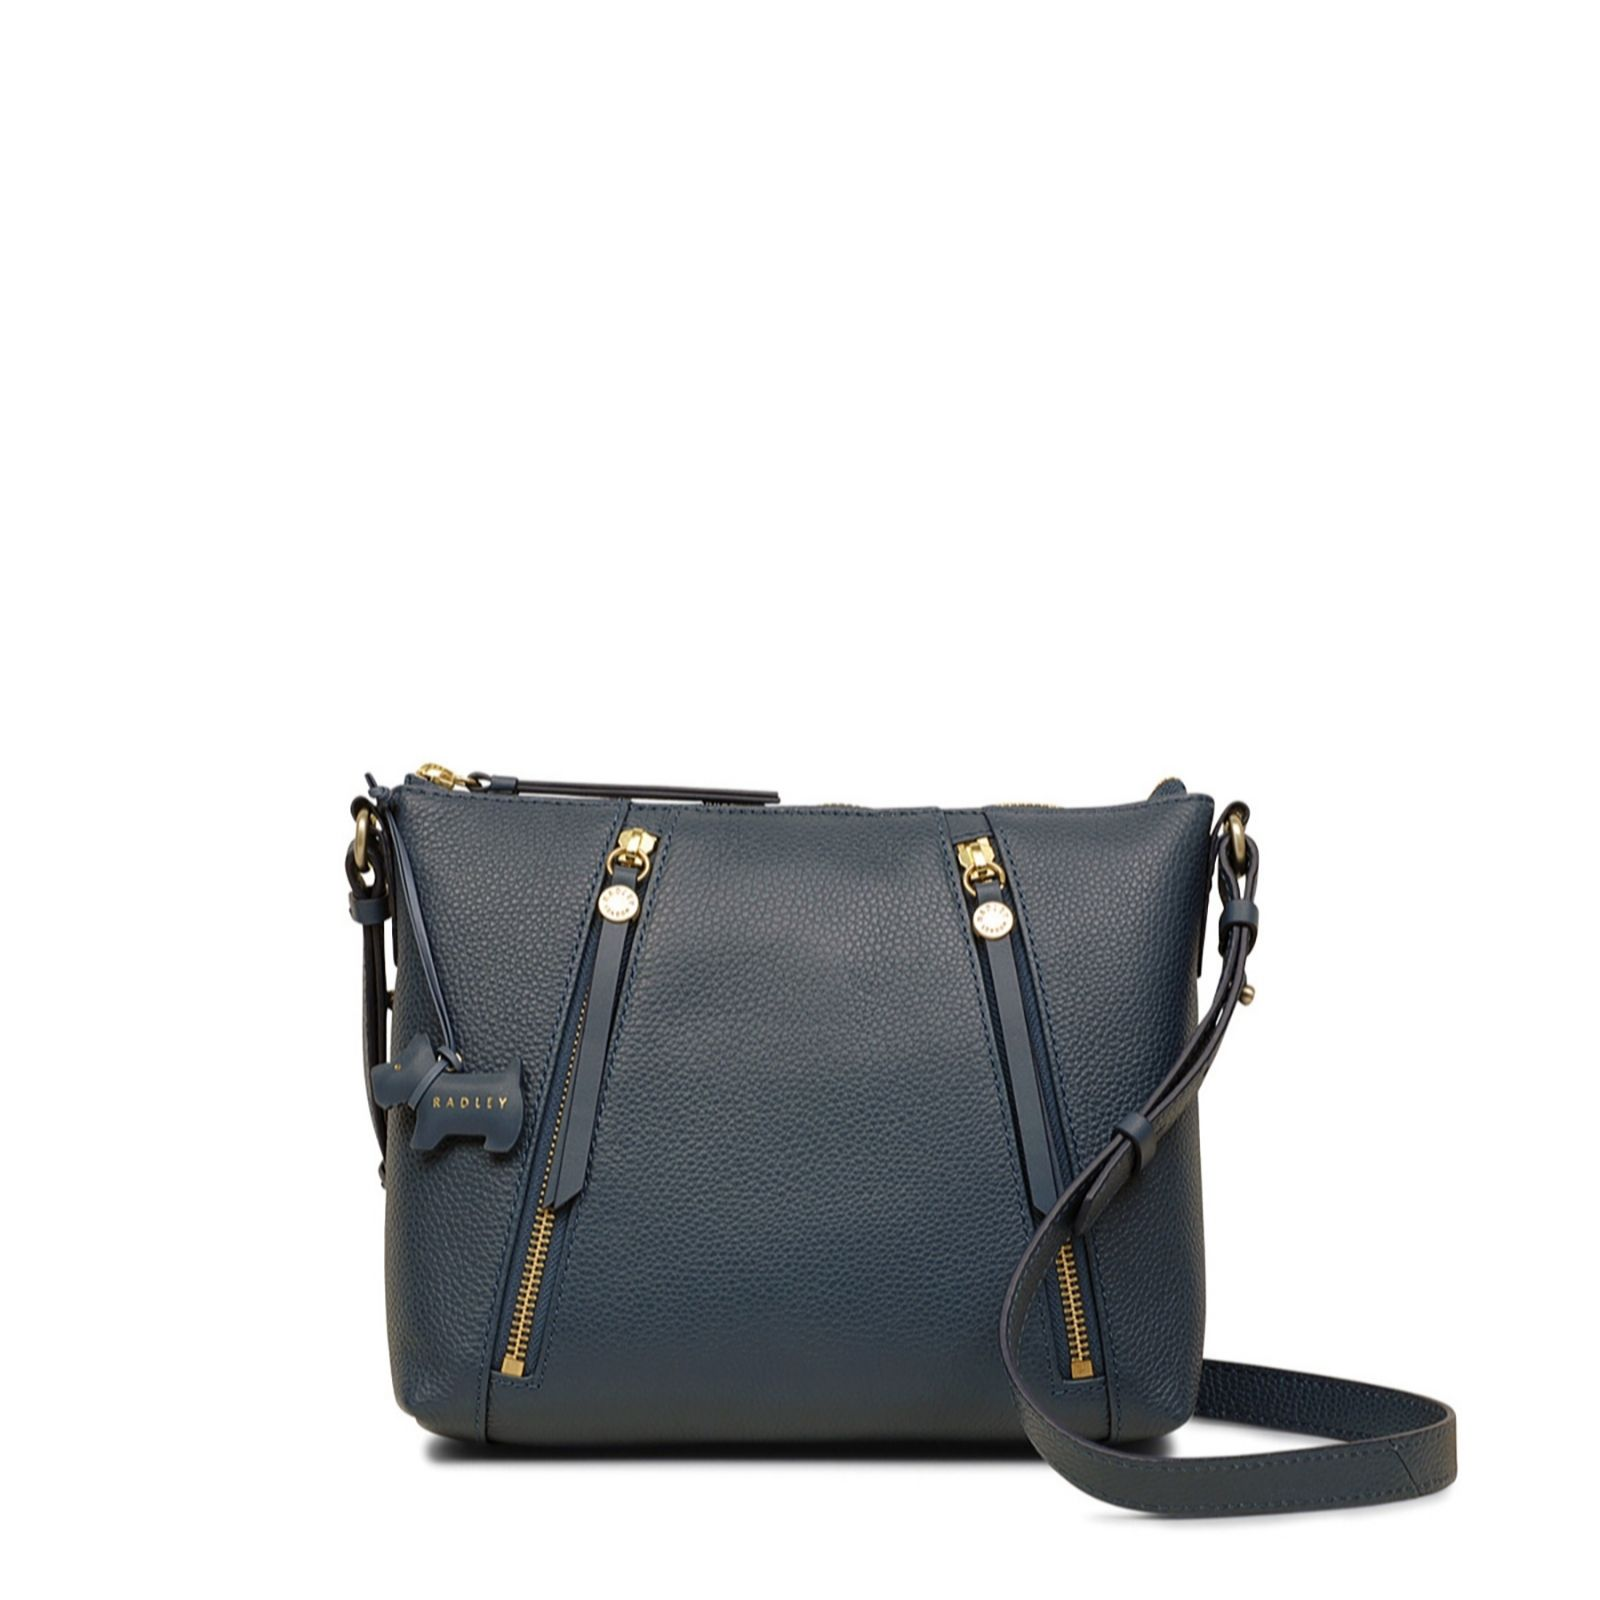 66573de7a5 Radley London Fountain Road Small Leather Zip Top Crossbody Bag - QVC UK